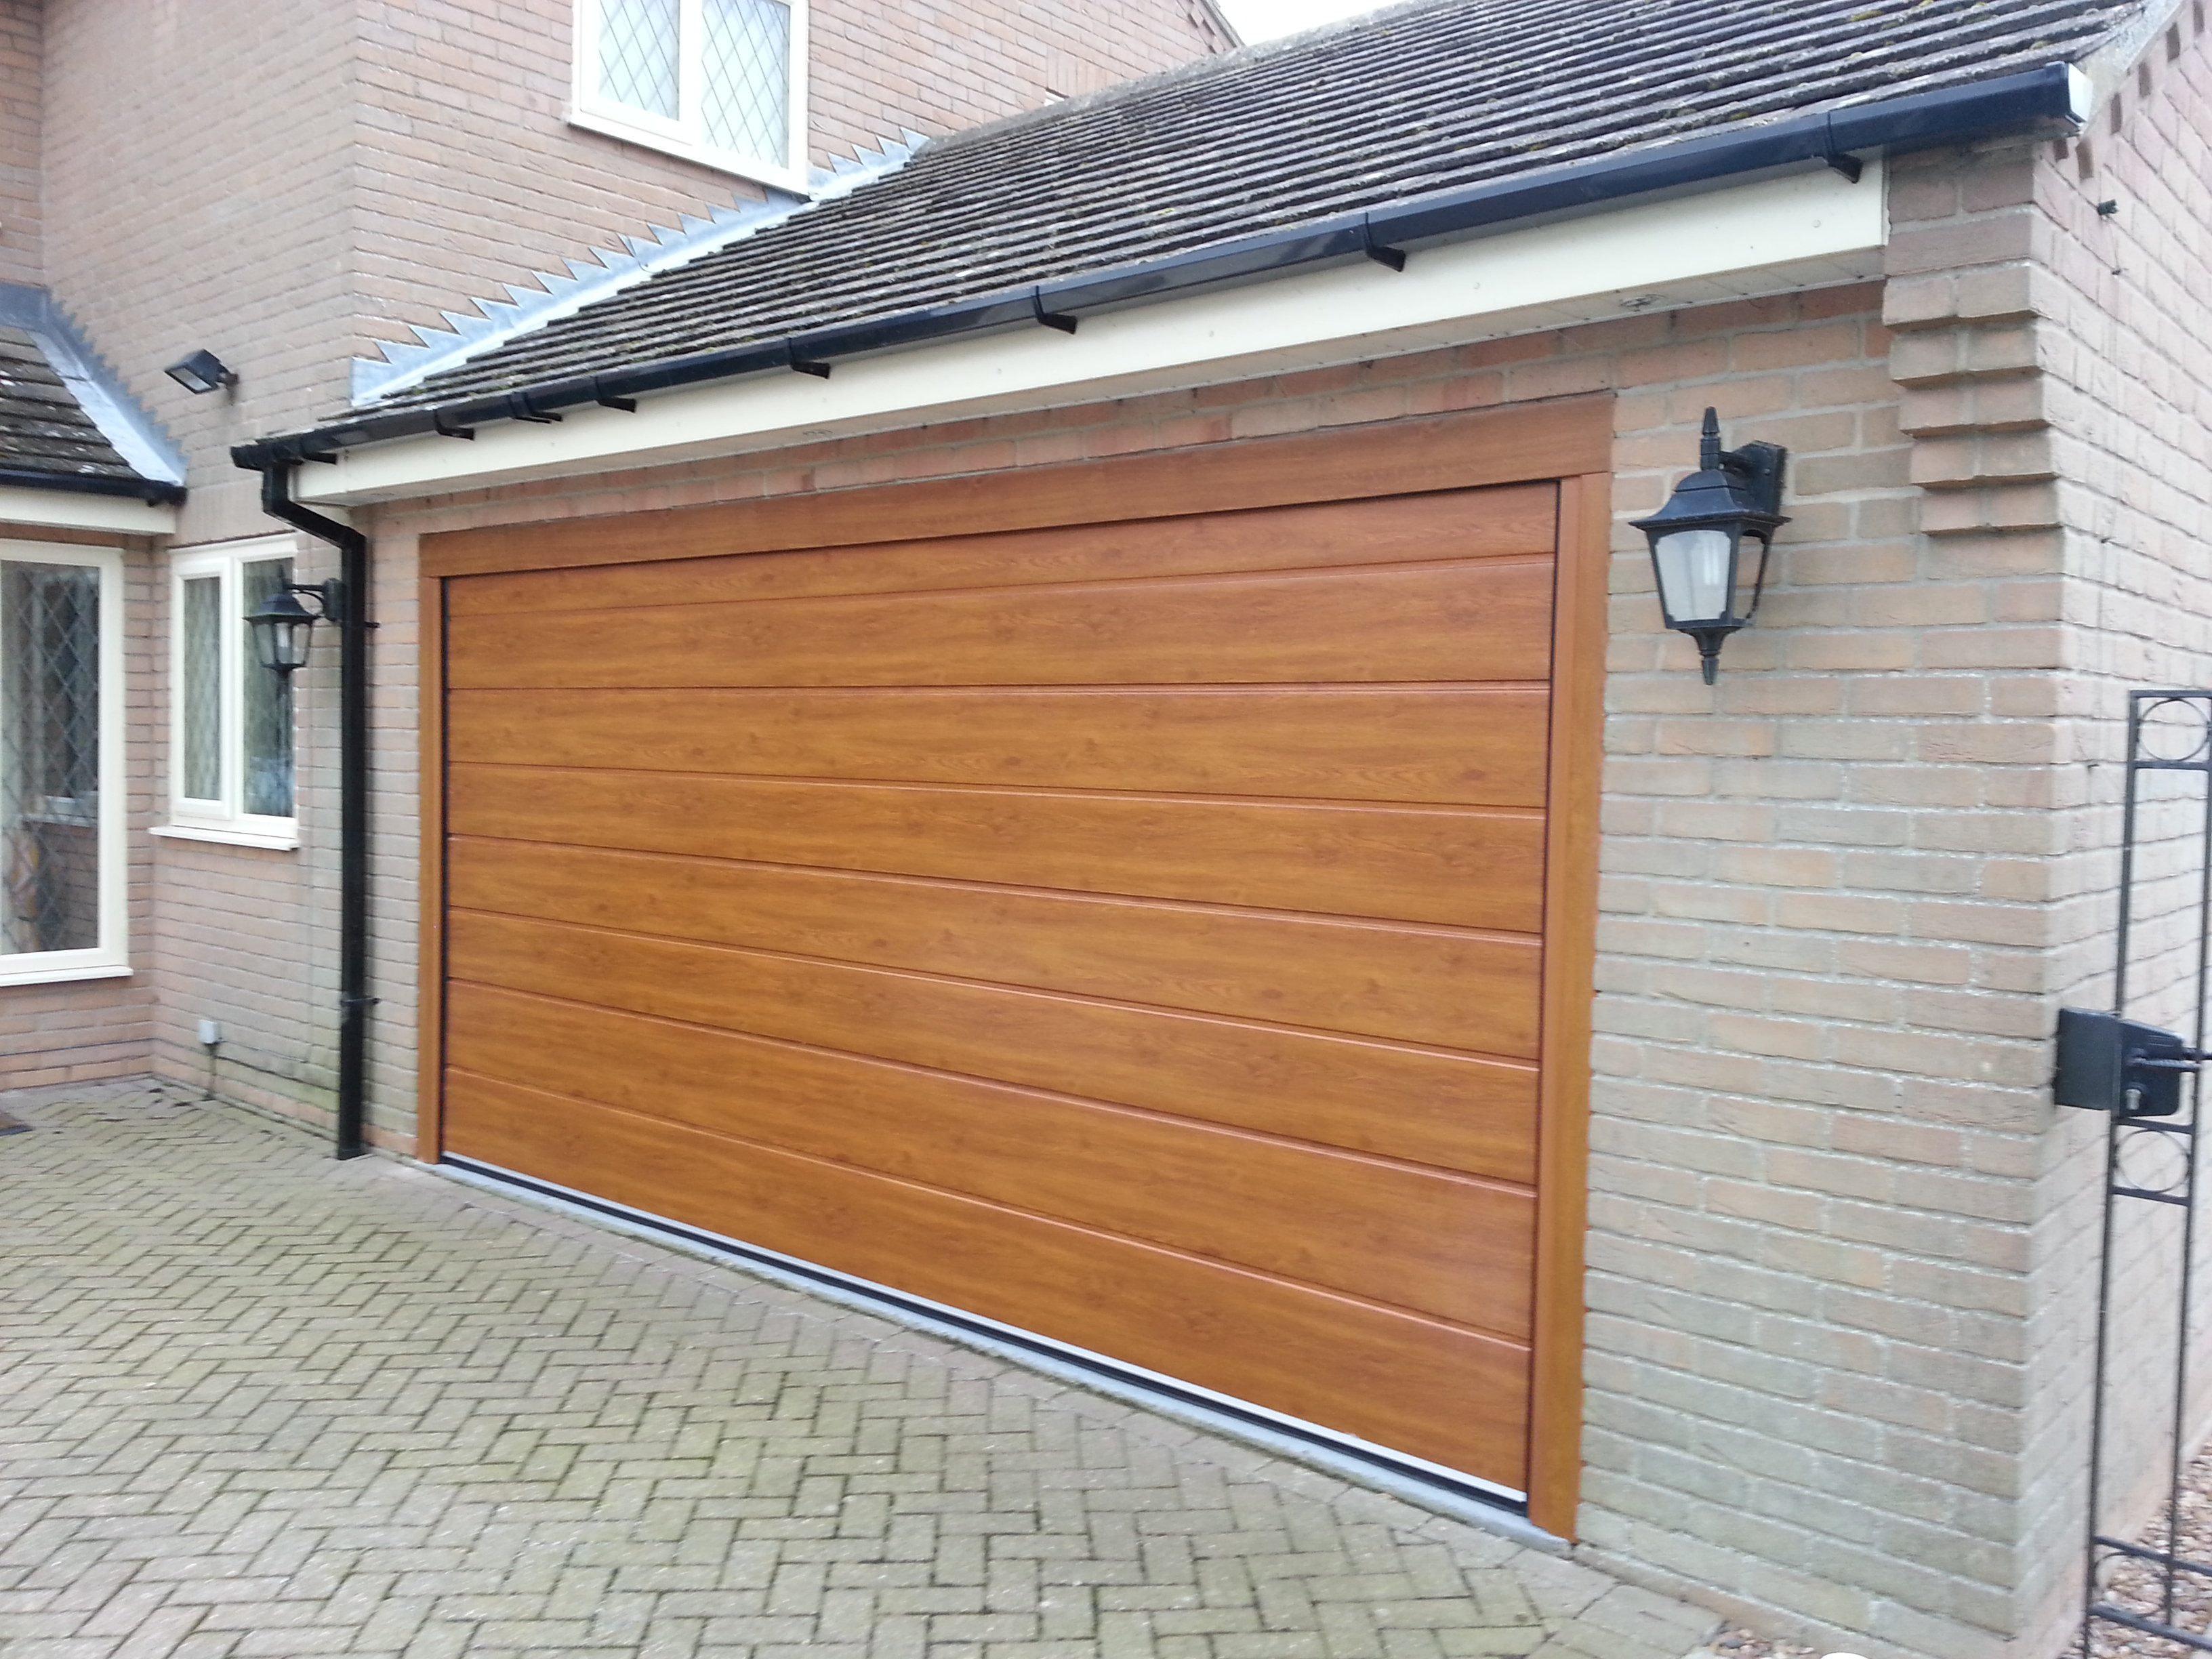 2448 #925E39 New Insulated Garage Door – Grantham East Midlands – Garage Door  save image Garage Doors New 36873264